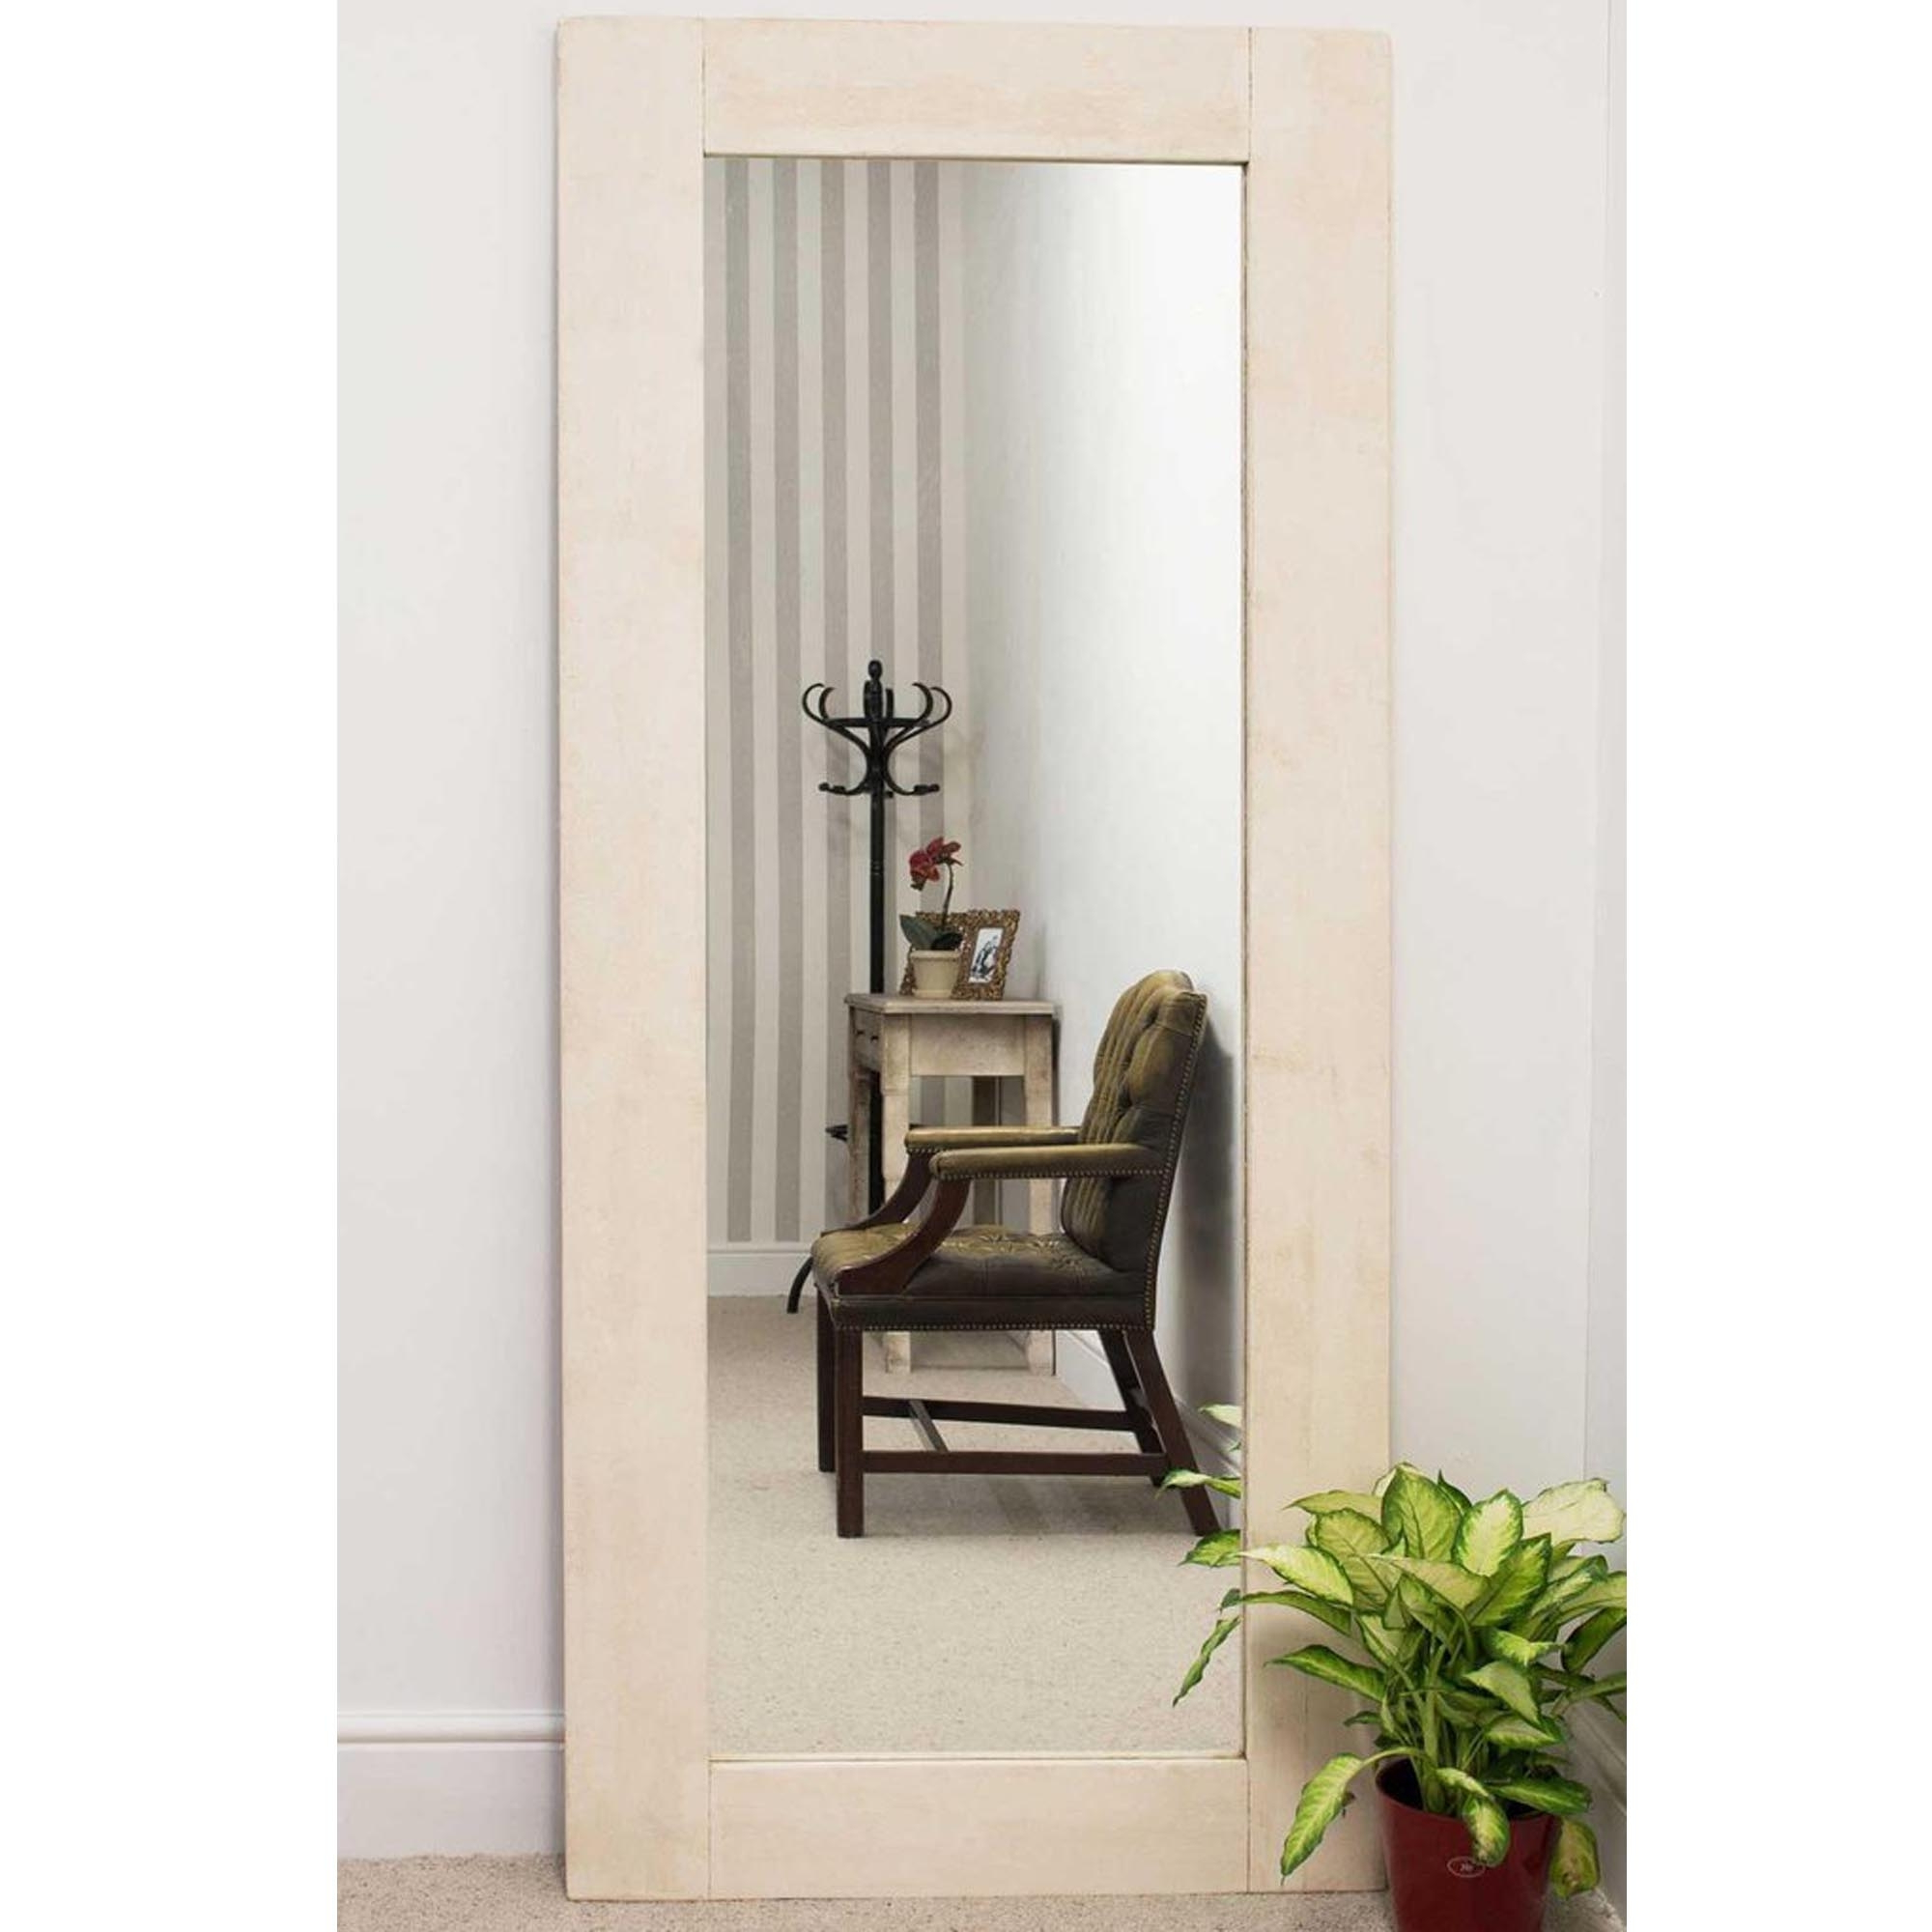 Best And Newest Tall Thin Rustic Country House White Wall Mirror Throughout Tall Narrow Wall Mirrors (View 2 of 20)